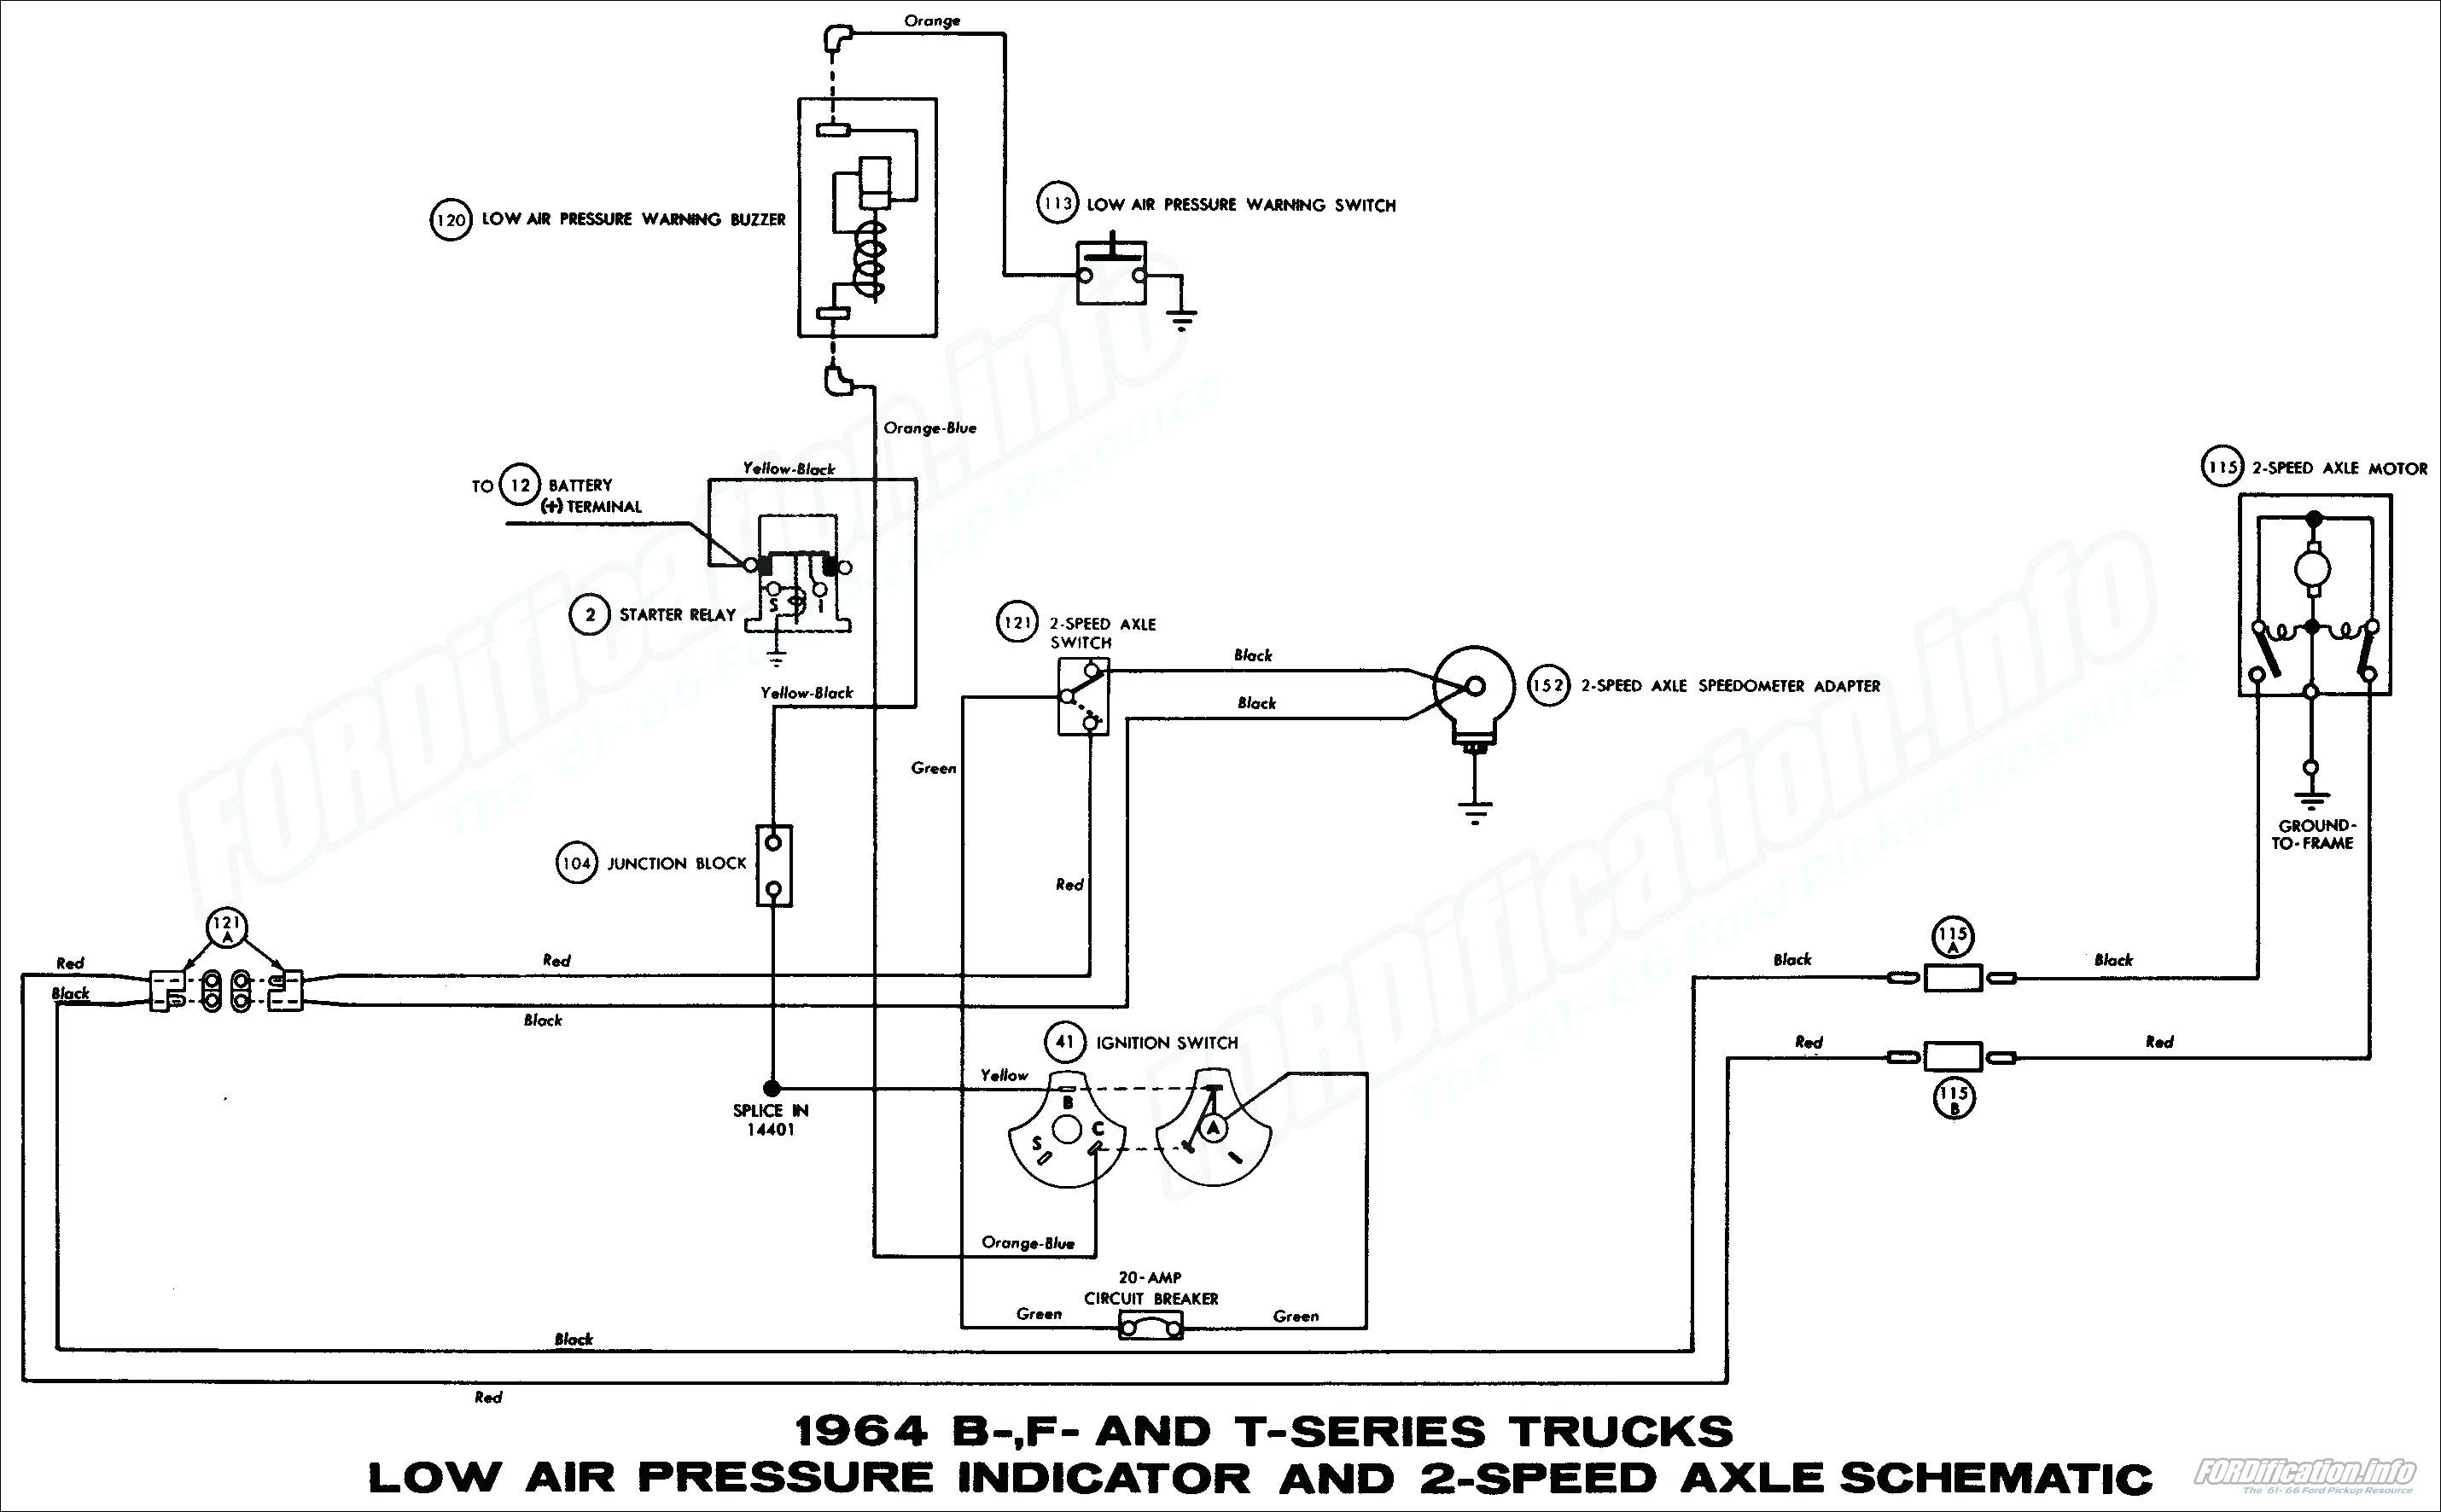 8N Ford Tractor Wiring Diagram Images - Wiring Diagram Sample